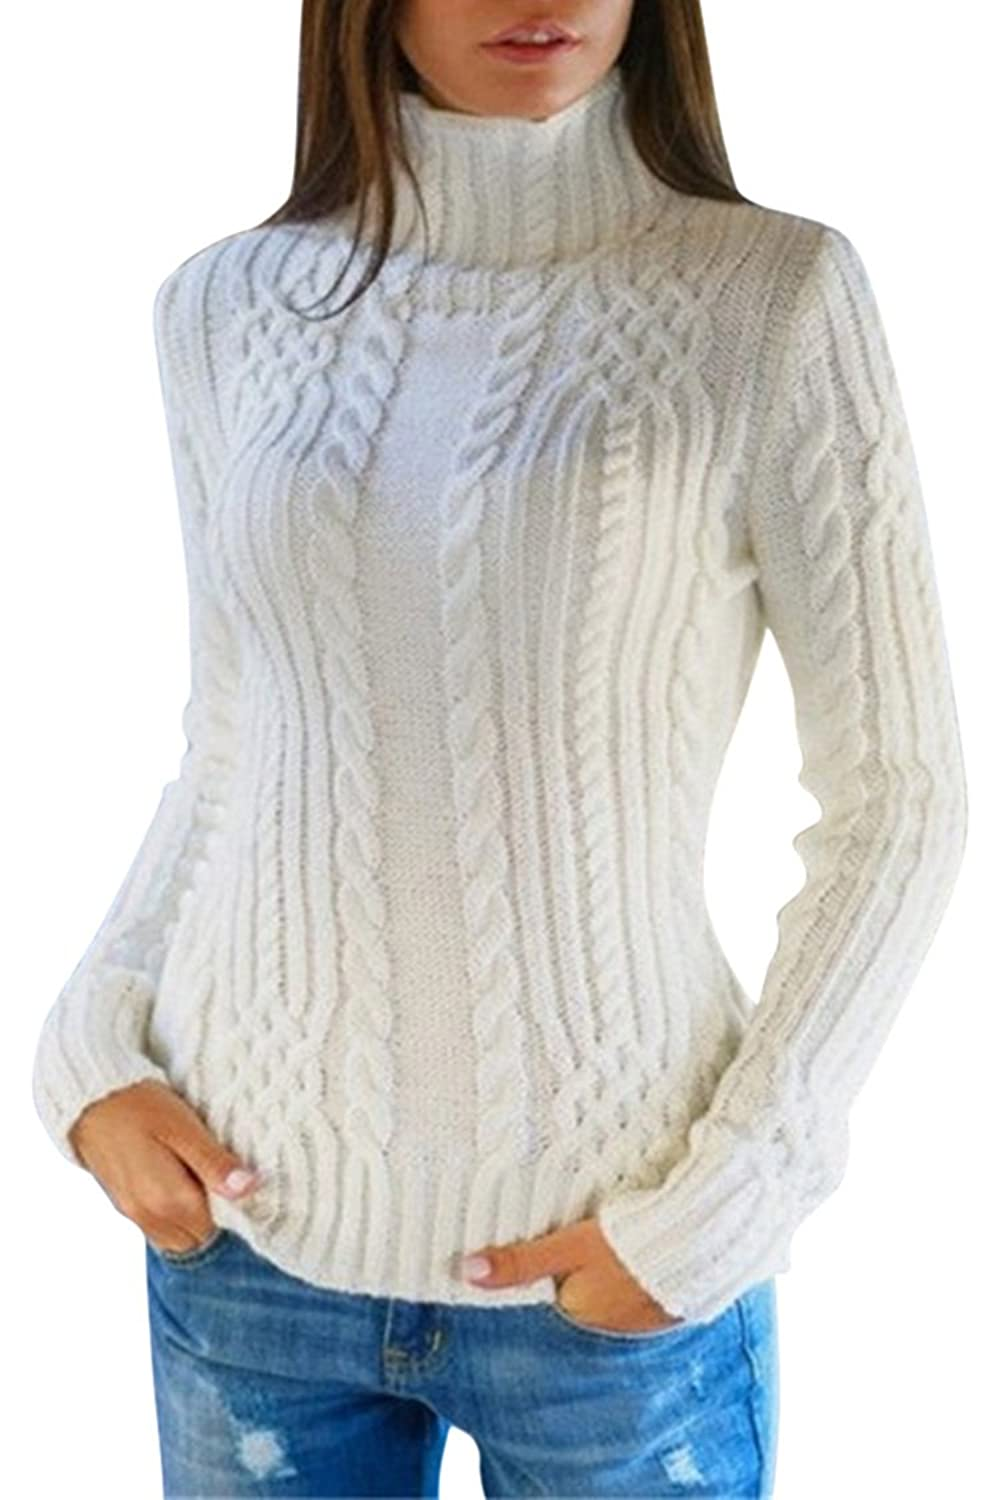 Pink Queen Buy One Get One Women's Cable Knit Crewneck Casual Pullover Sweater